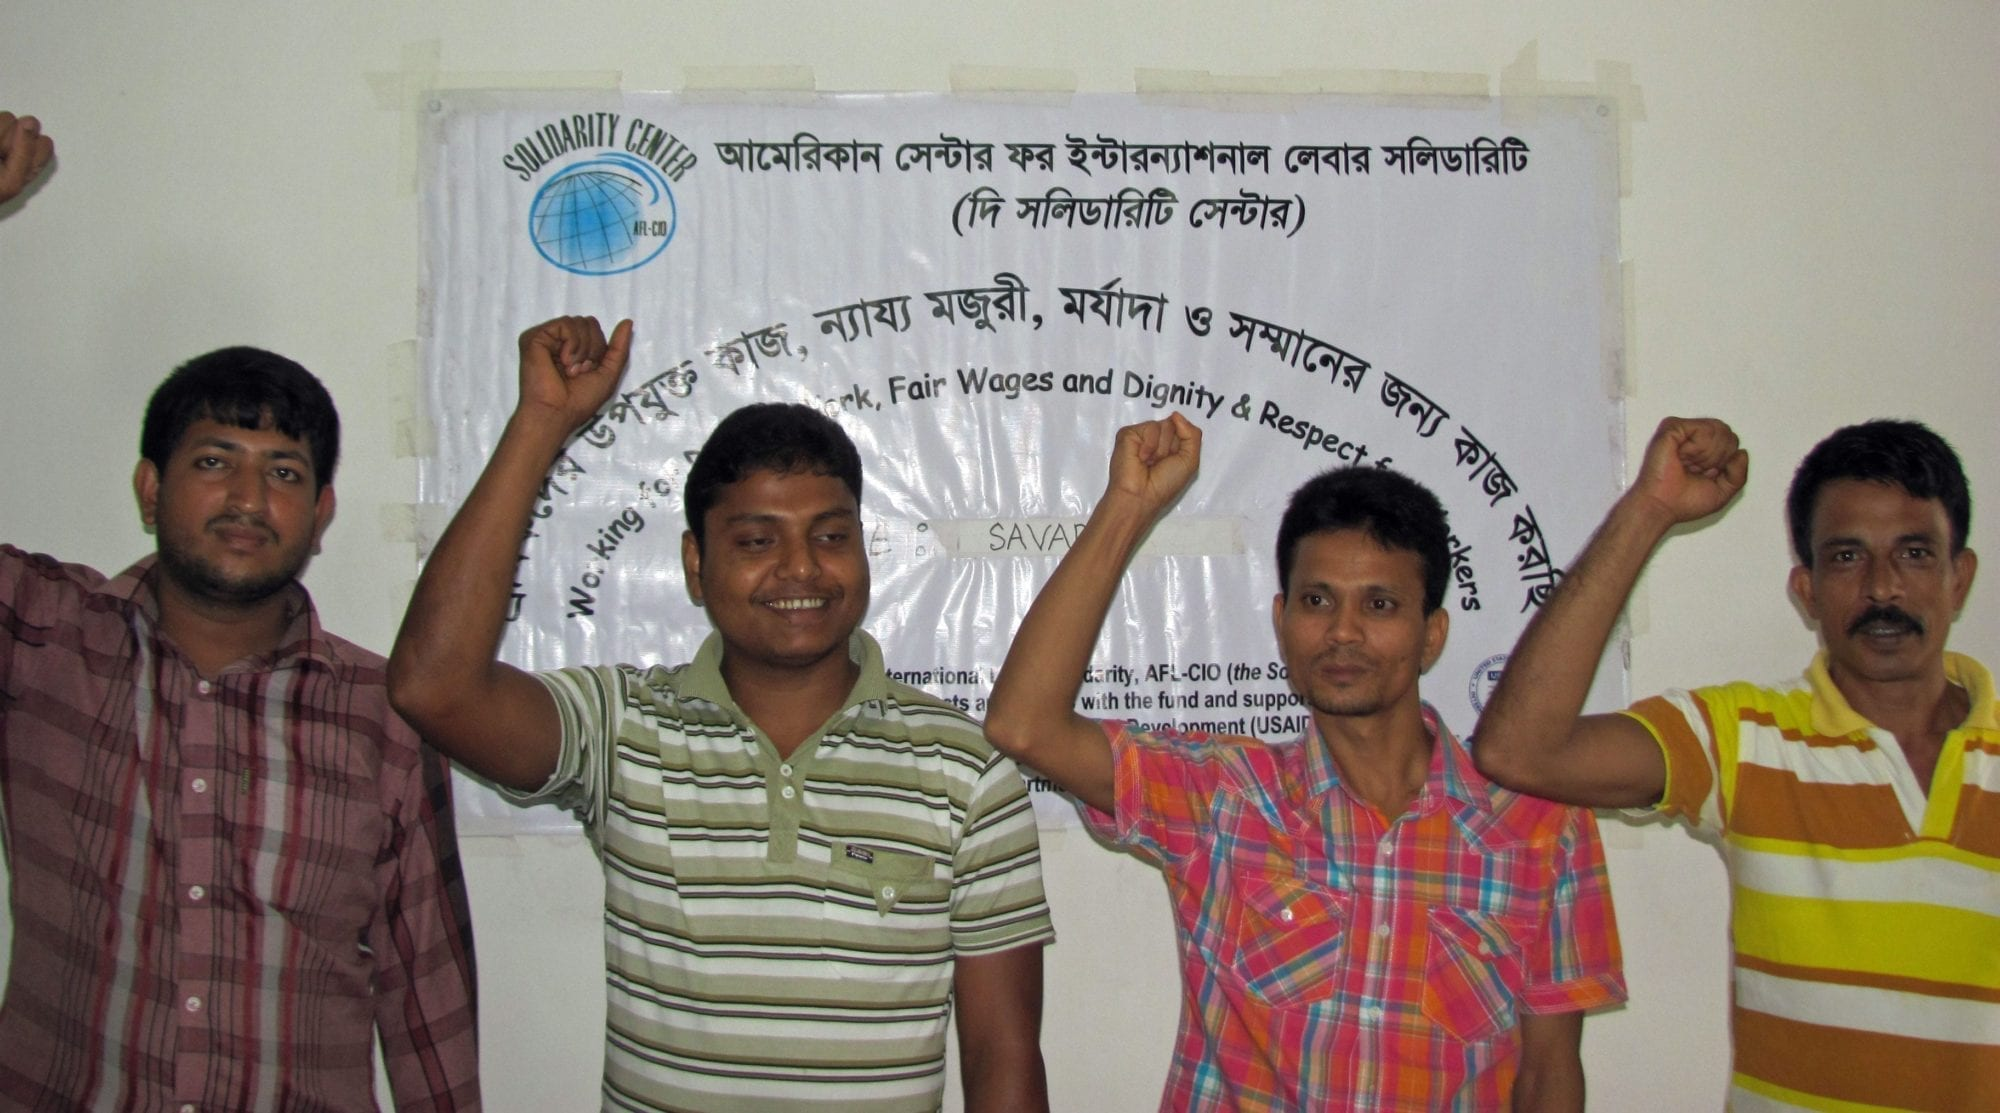 Bangladesh, EPZ, garment workers, Solidarity Center, human rights, labor rights